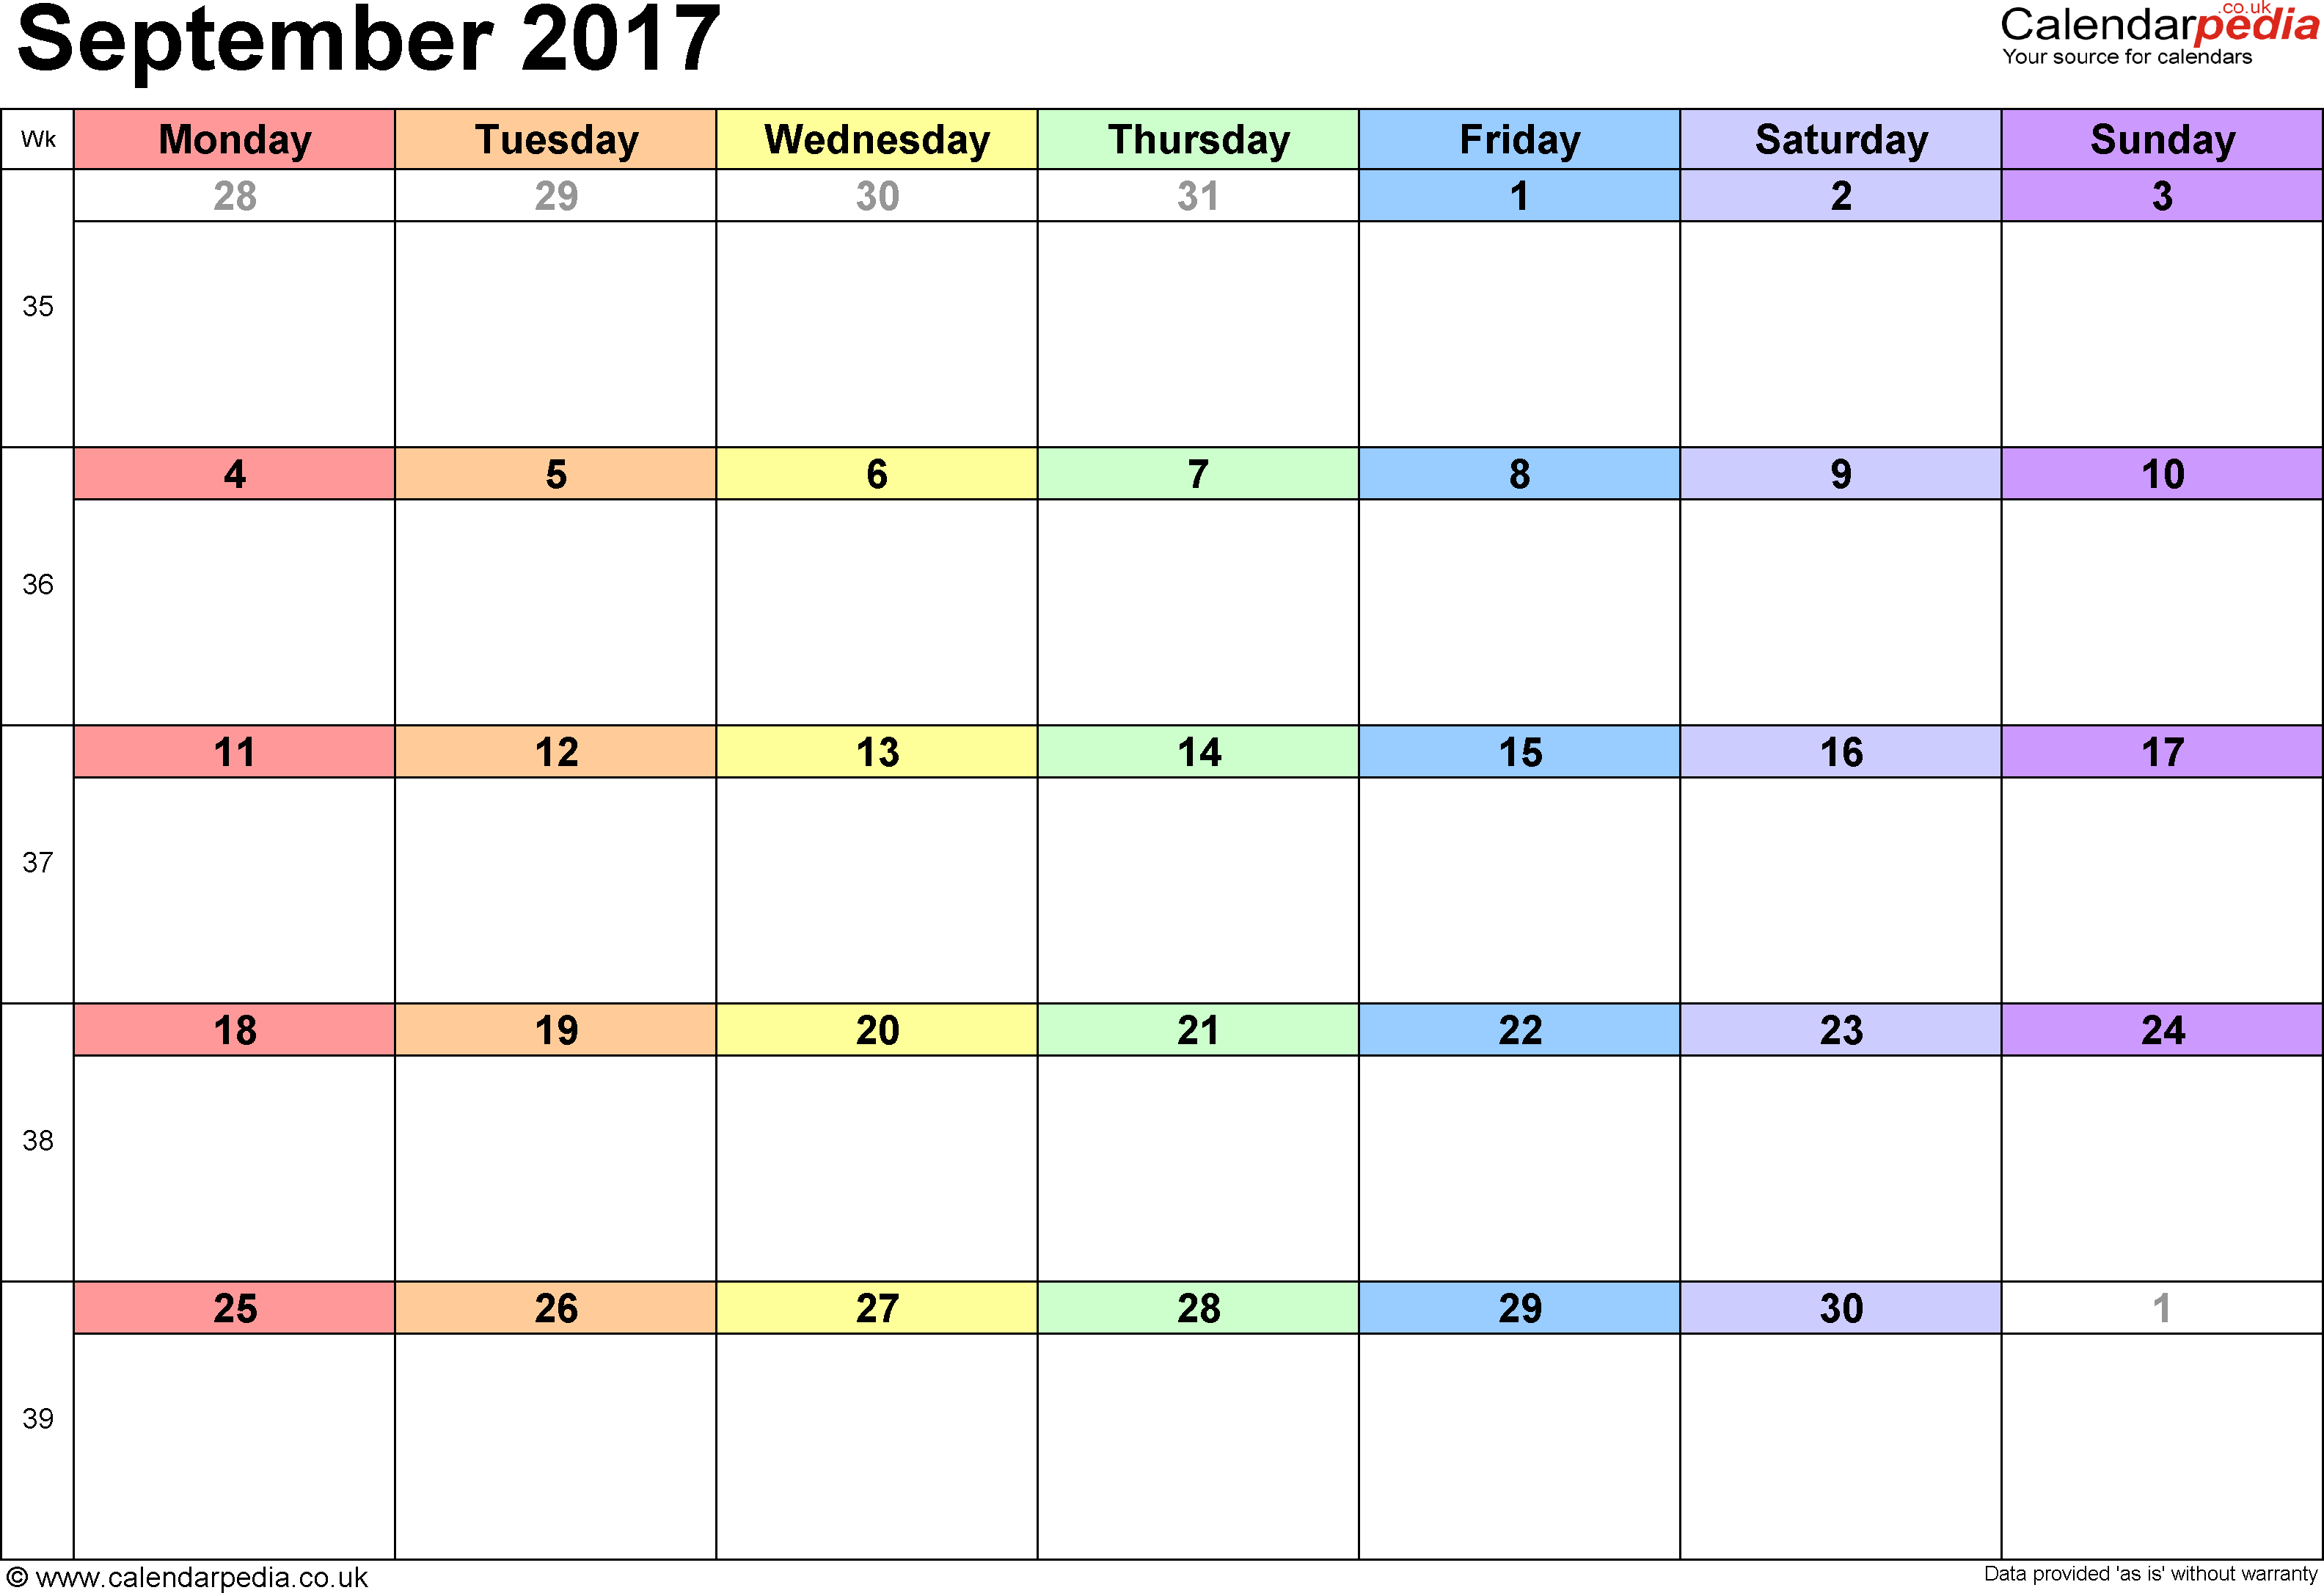 Calendar September 2017 UK, Bank Holidays, Excel/PDF/Word Templates